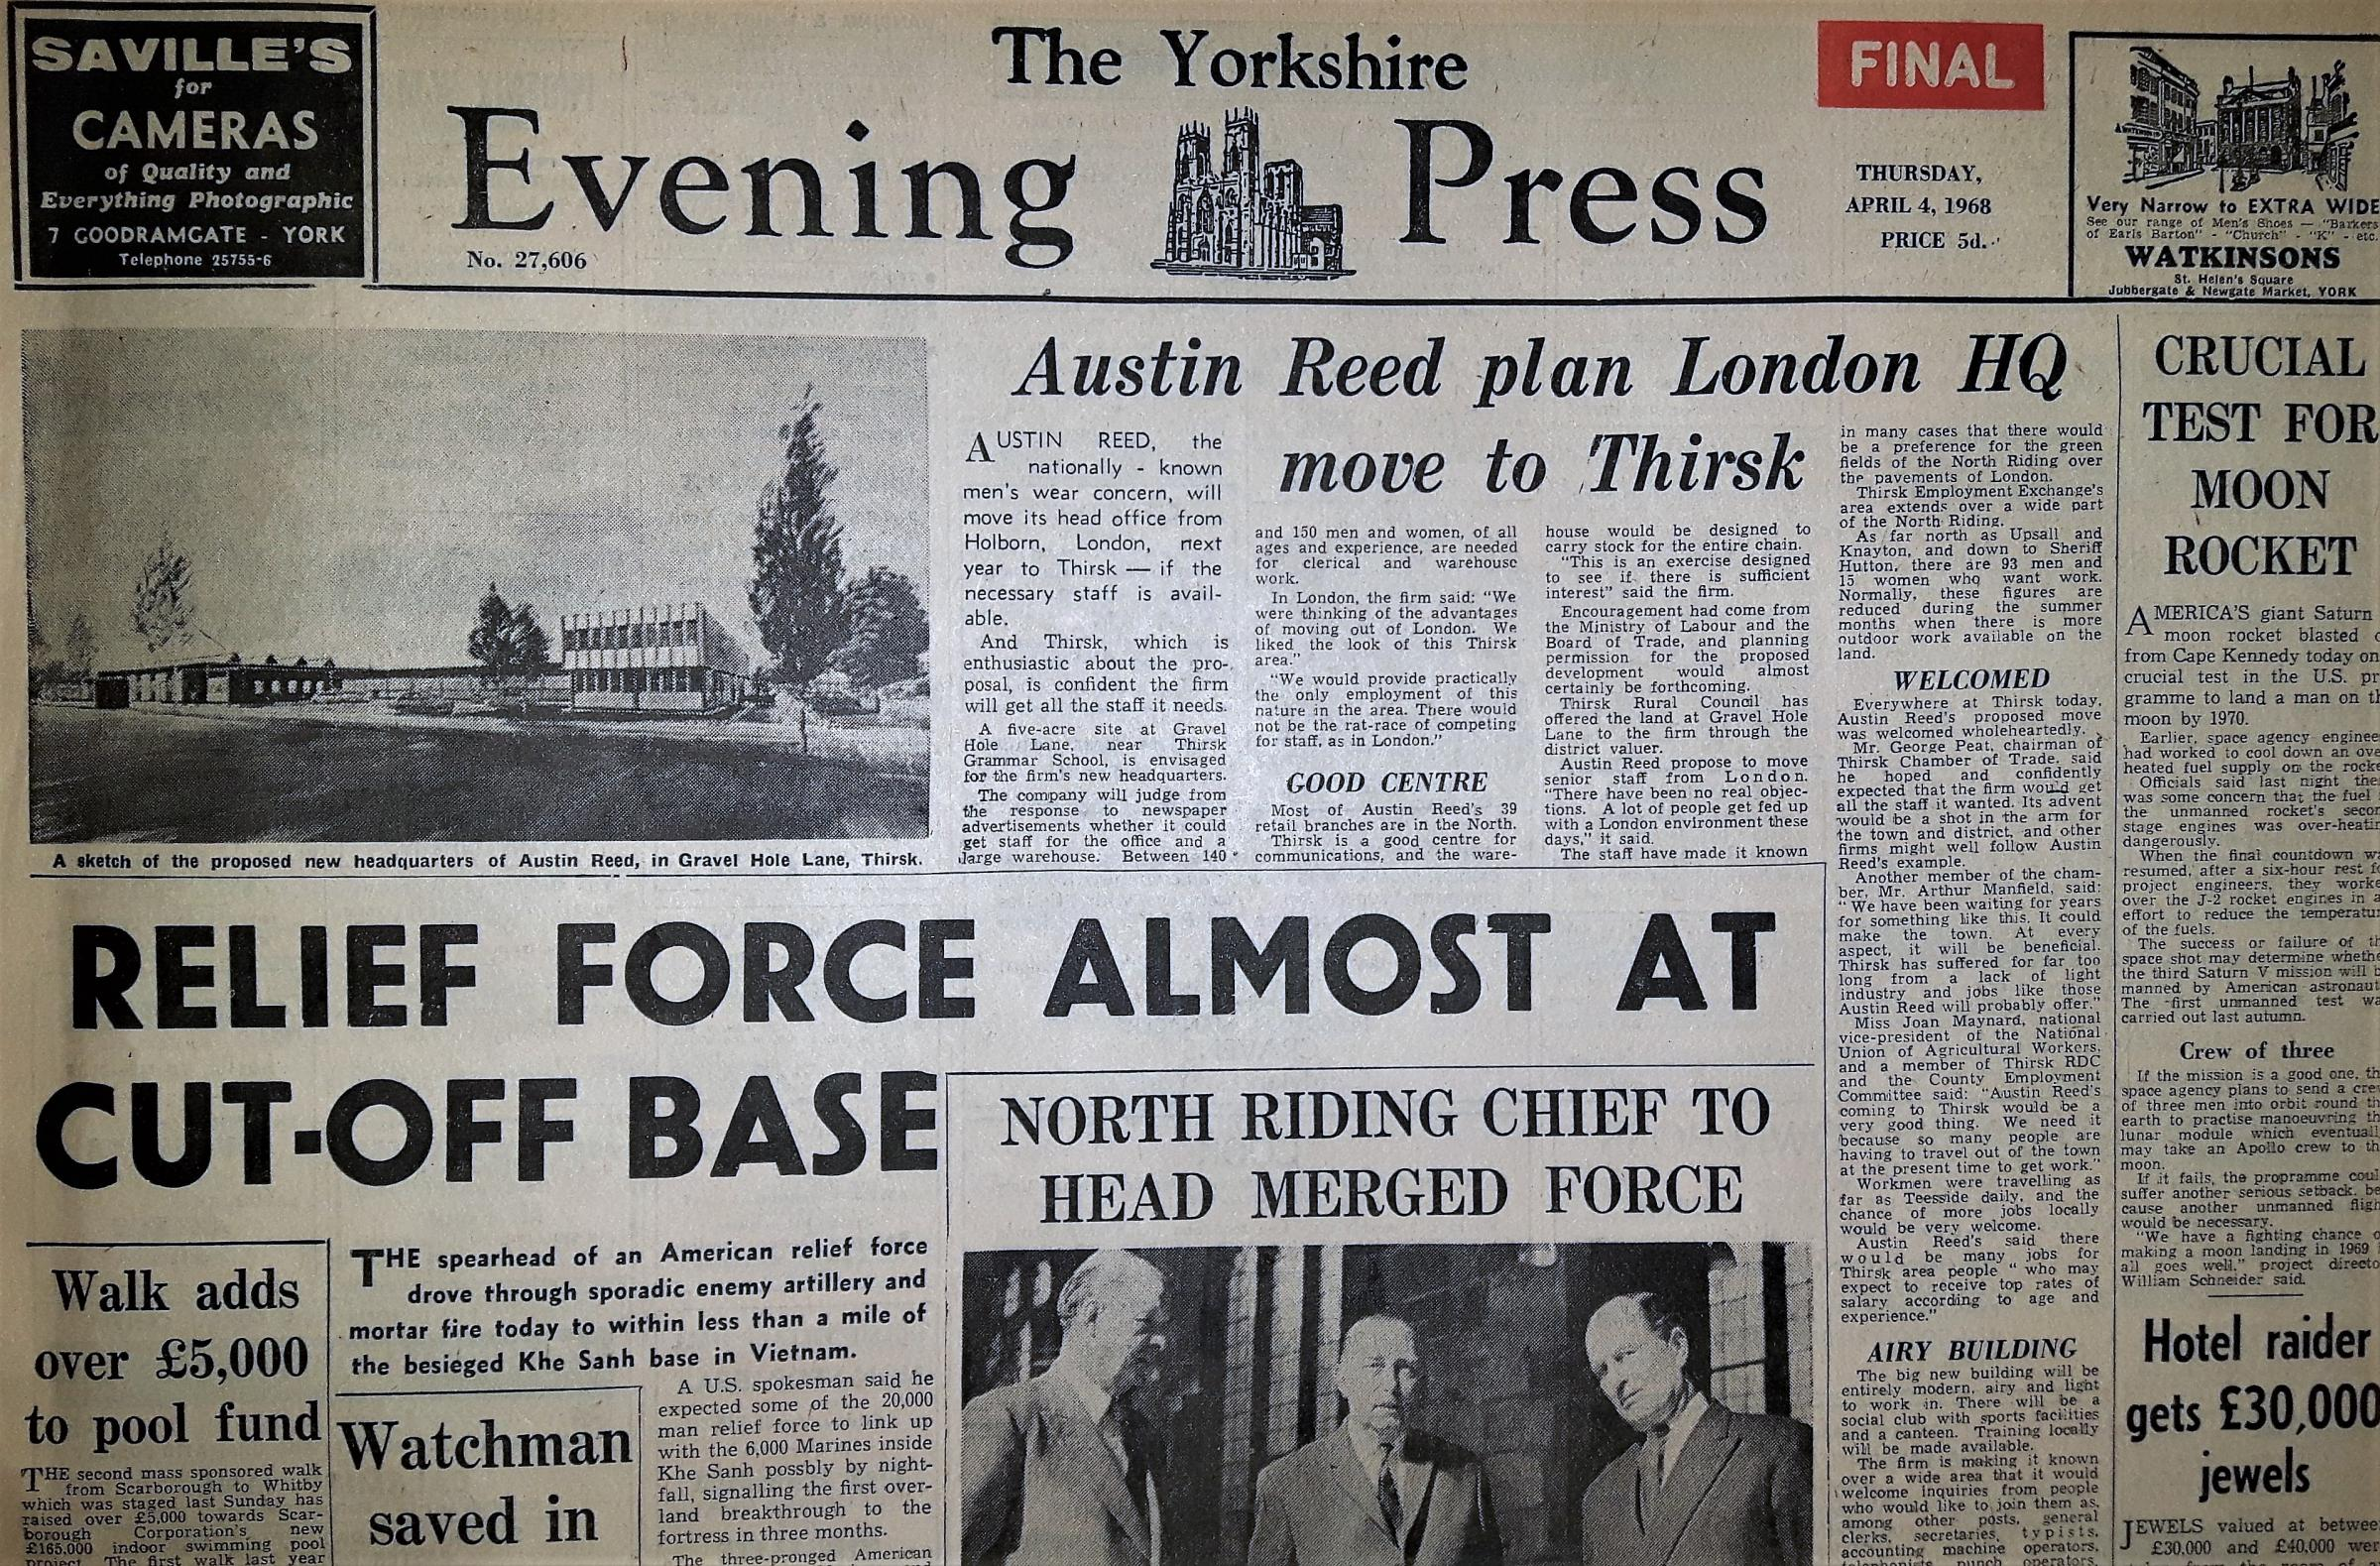 On This Day April 4 York Press